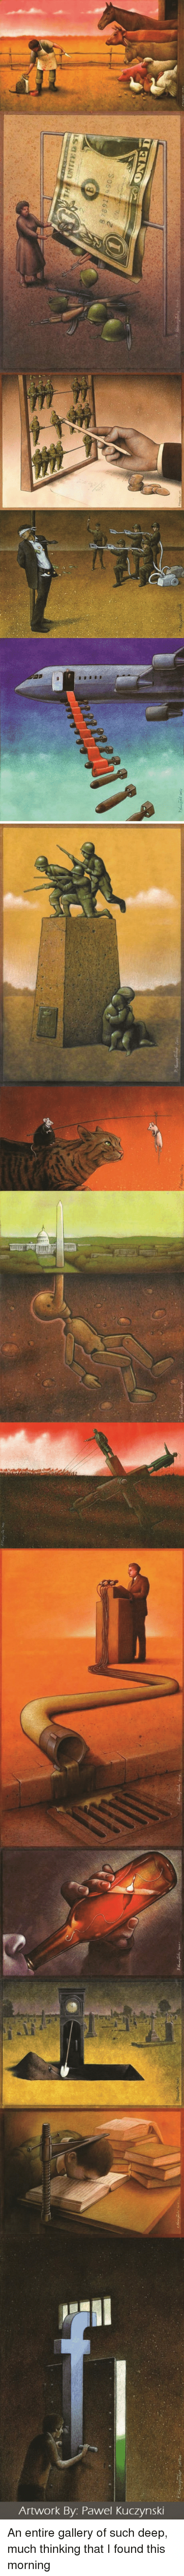 Im 14 & This Is Deep: Artwork By: Pawel Kuczynski An entire gallery of such deep, much thinking that I found this morning